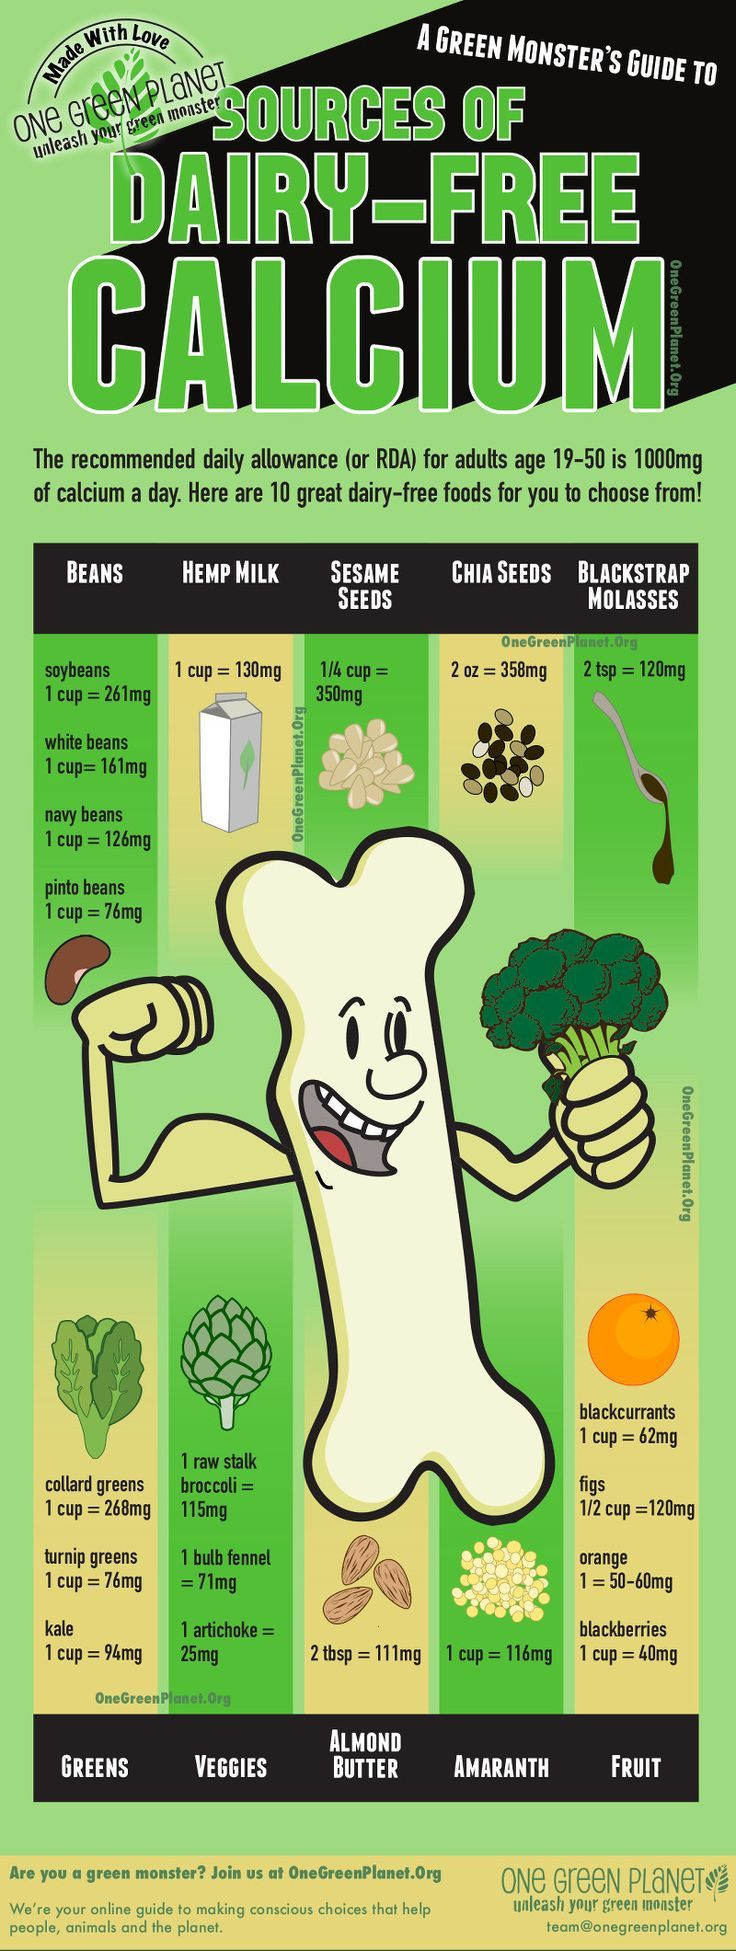 Best Source Of Dairy Free Calcium Infographic | #calcium #food #healthyfood